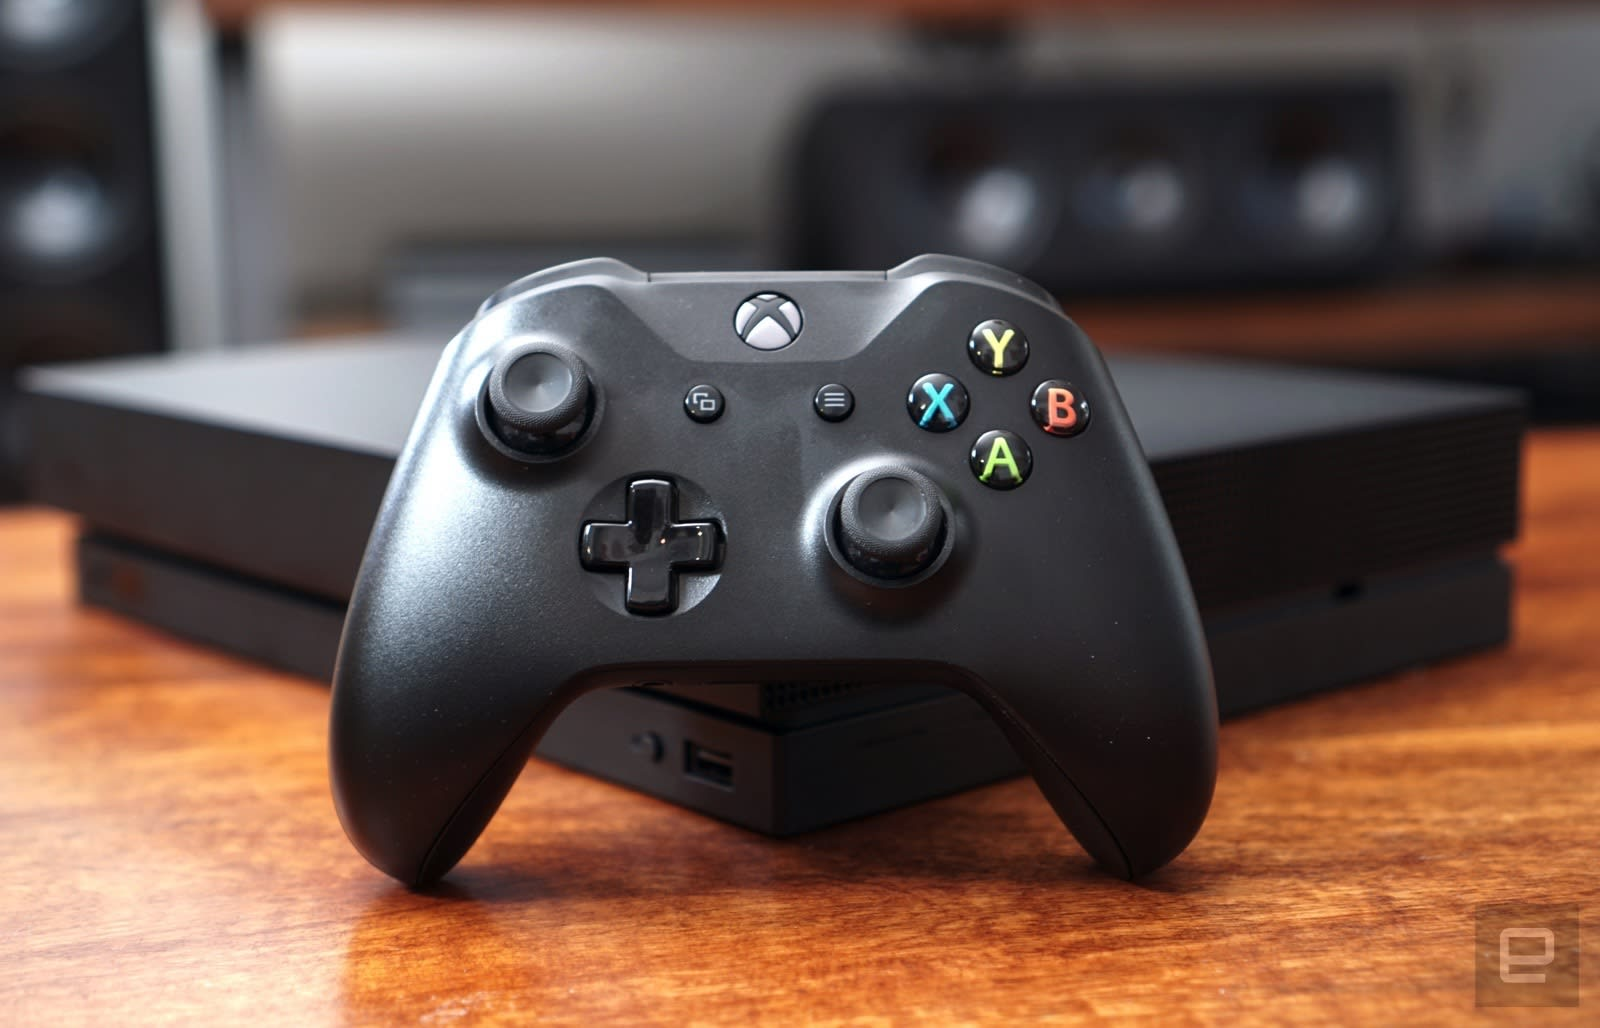 Apple is selling Microsoft's Xbox controller in its online store